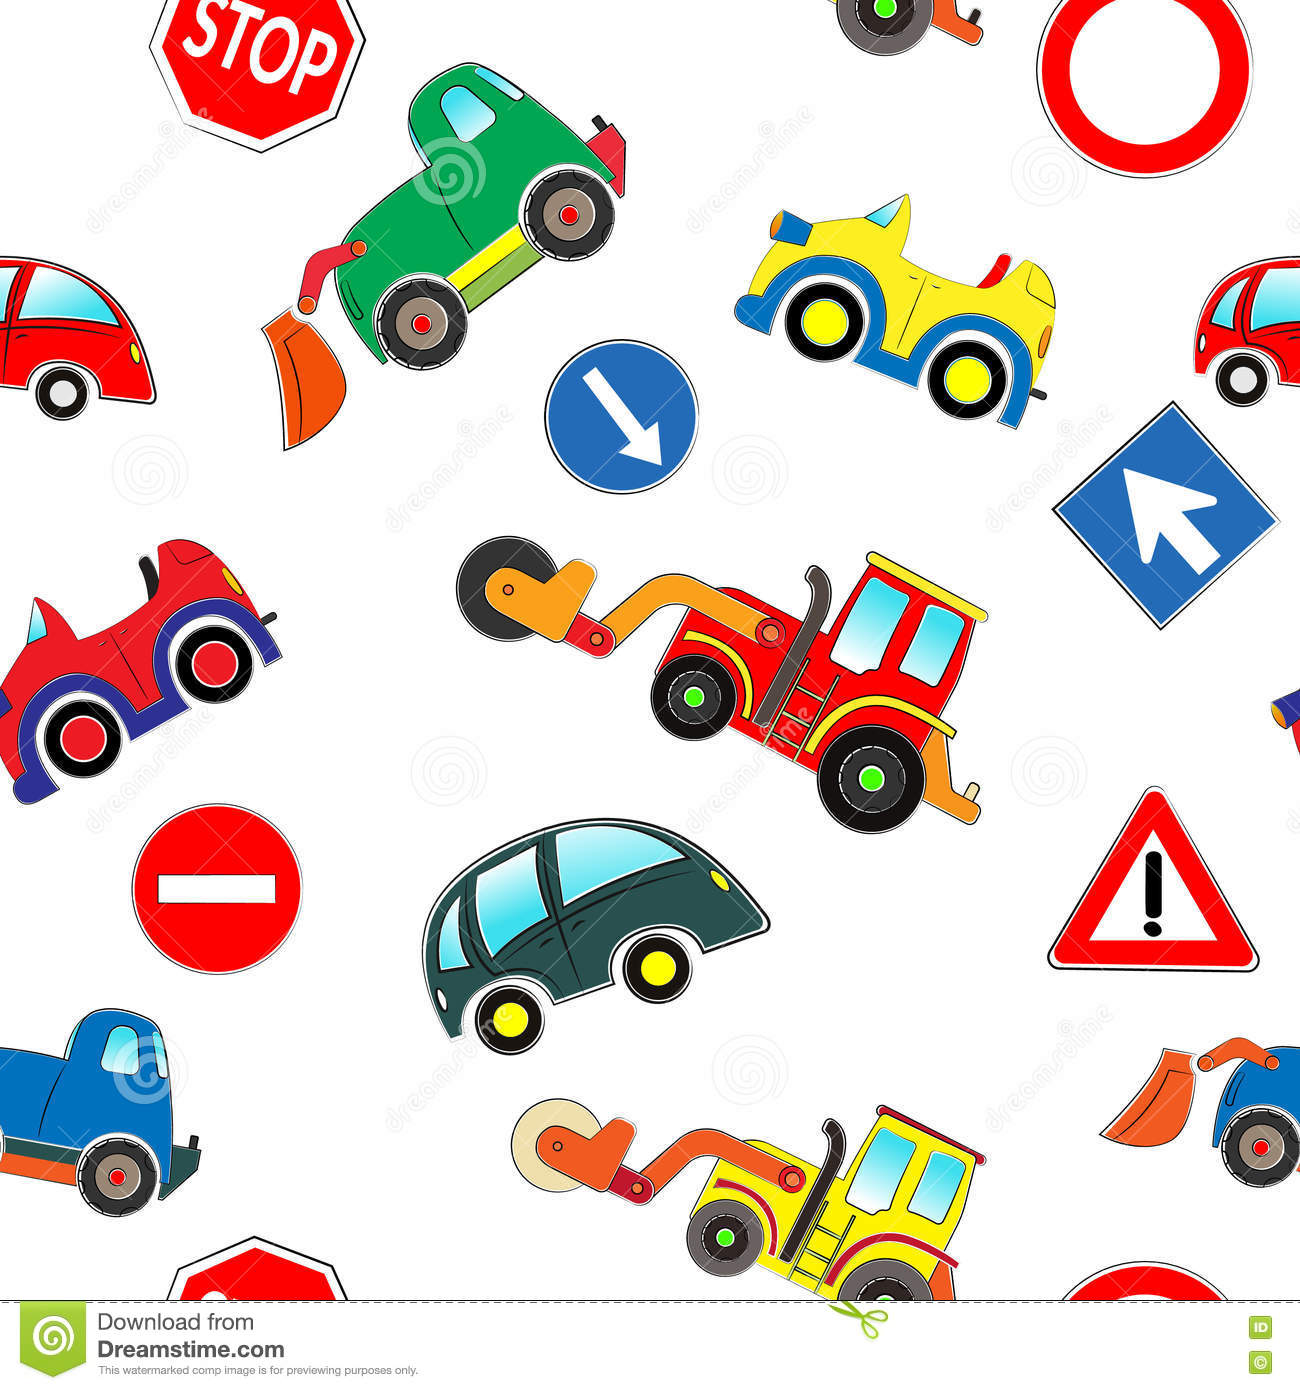 All Cars Symbols Wallpaper Seamless Kids Cars Pattern Stock Vector Image 71470432